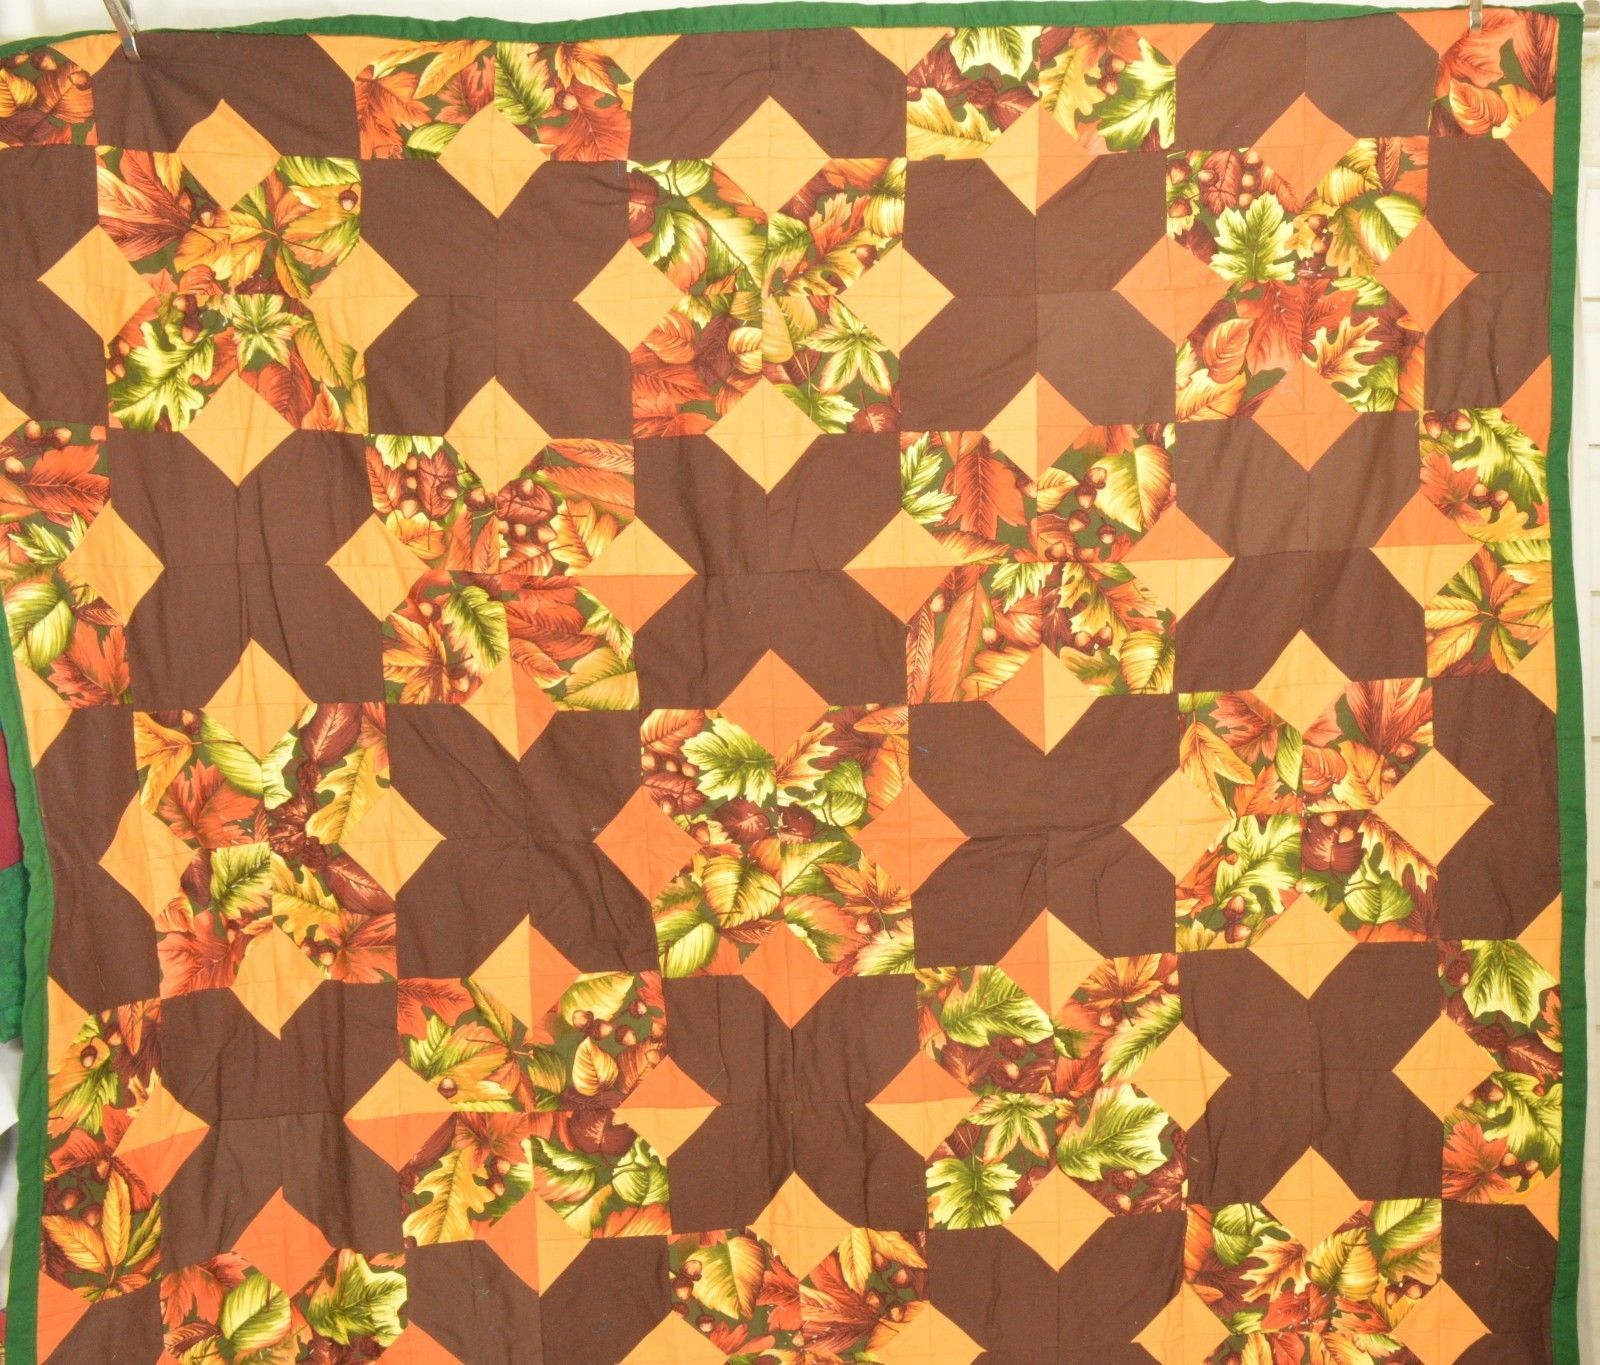 Quilt handmade fall Thanksgiving colors 54 x 54 reversible inches brand new